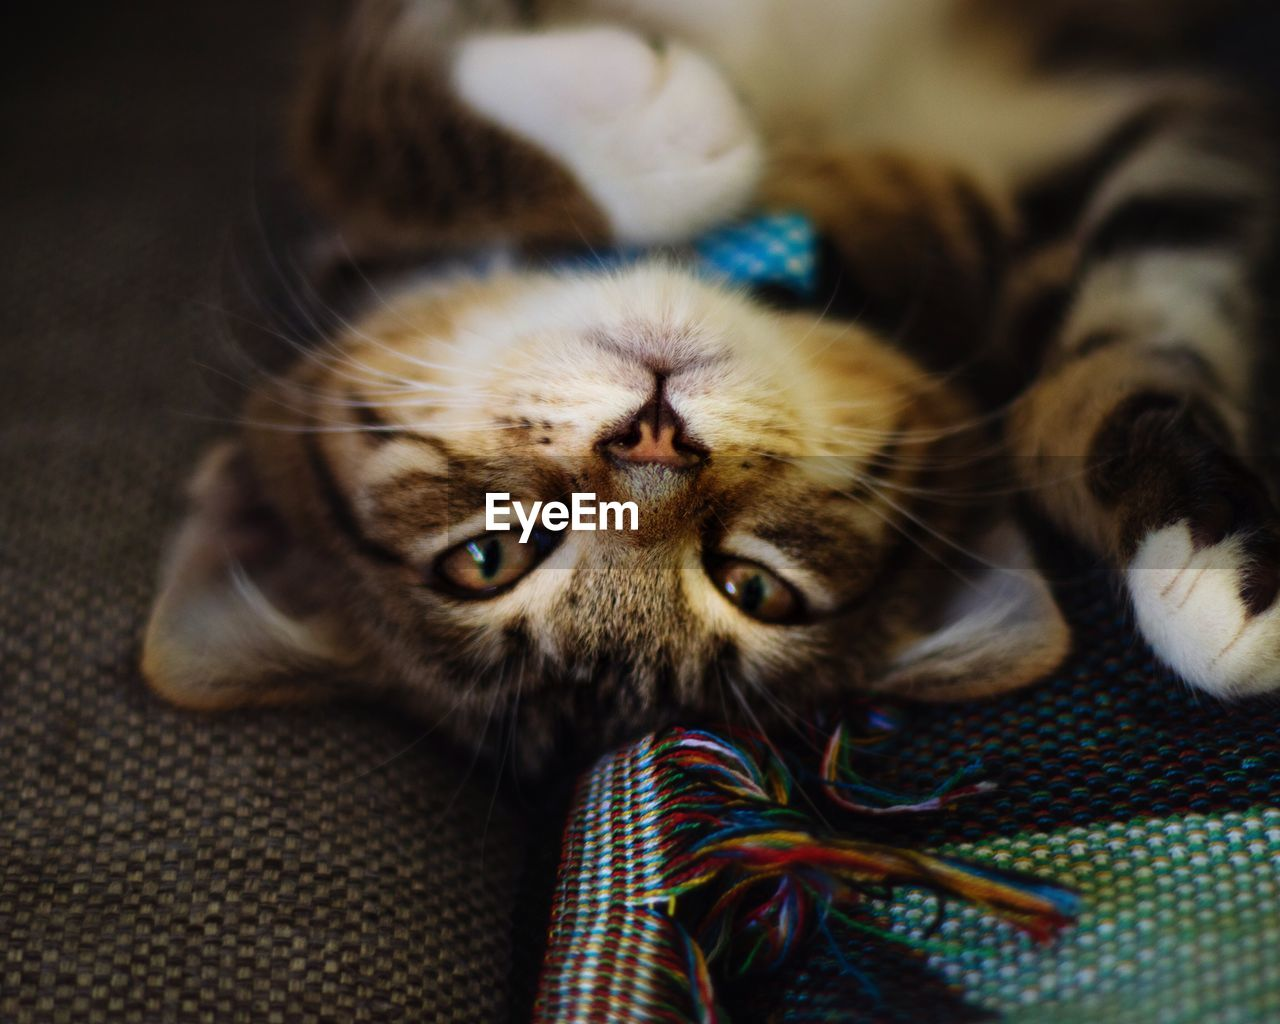 cat, one animal, domestic cat, domestic, pets, mammal, animal themes, animal, domestic animals, feline, vertebrate, looking at camera, indoors, portrait, relaxation, no people, furniture, close-up, lying down, animal body part, whisker, animal head, animal eye, tabby